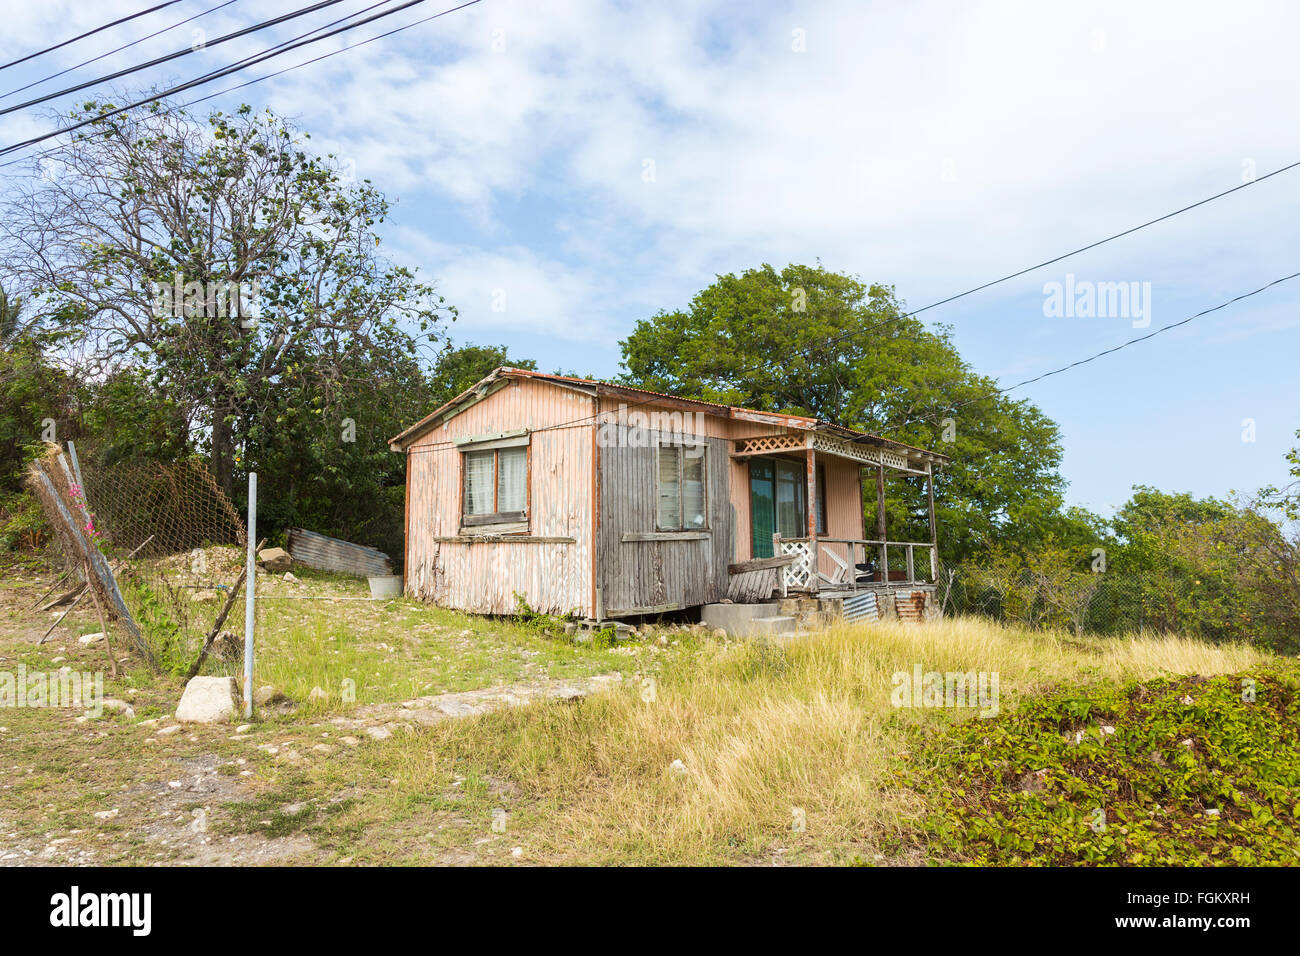 Typical run-down, ramshackle, derelict, wooden shack house near Stingray City in the east of Antigua, Antigua and - Stock Image